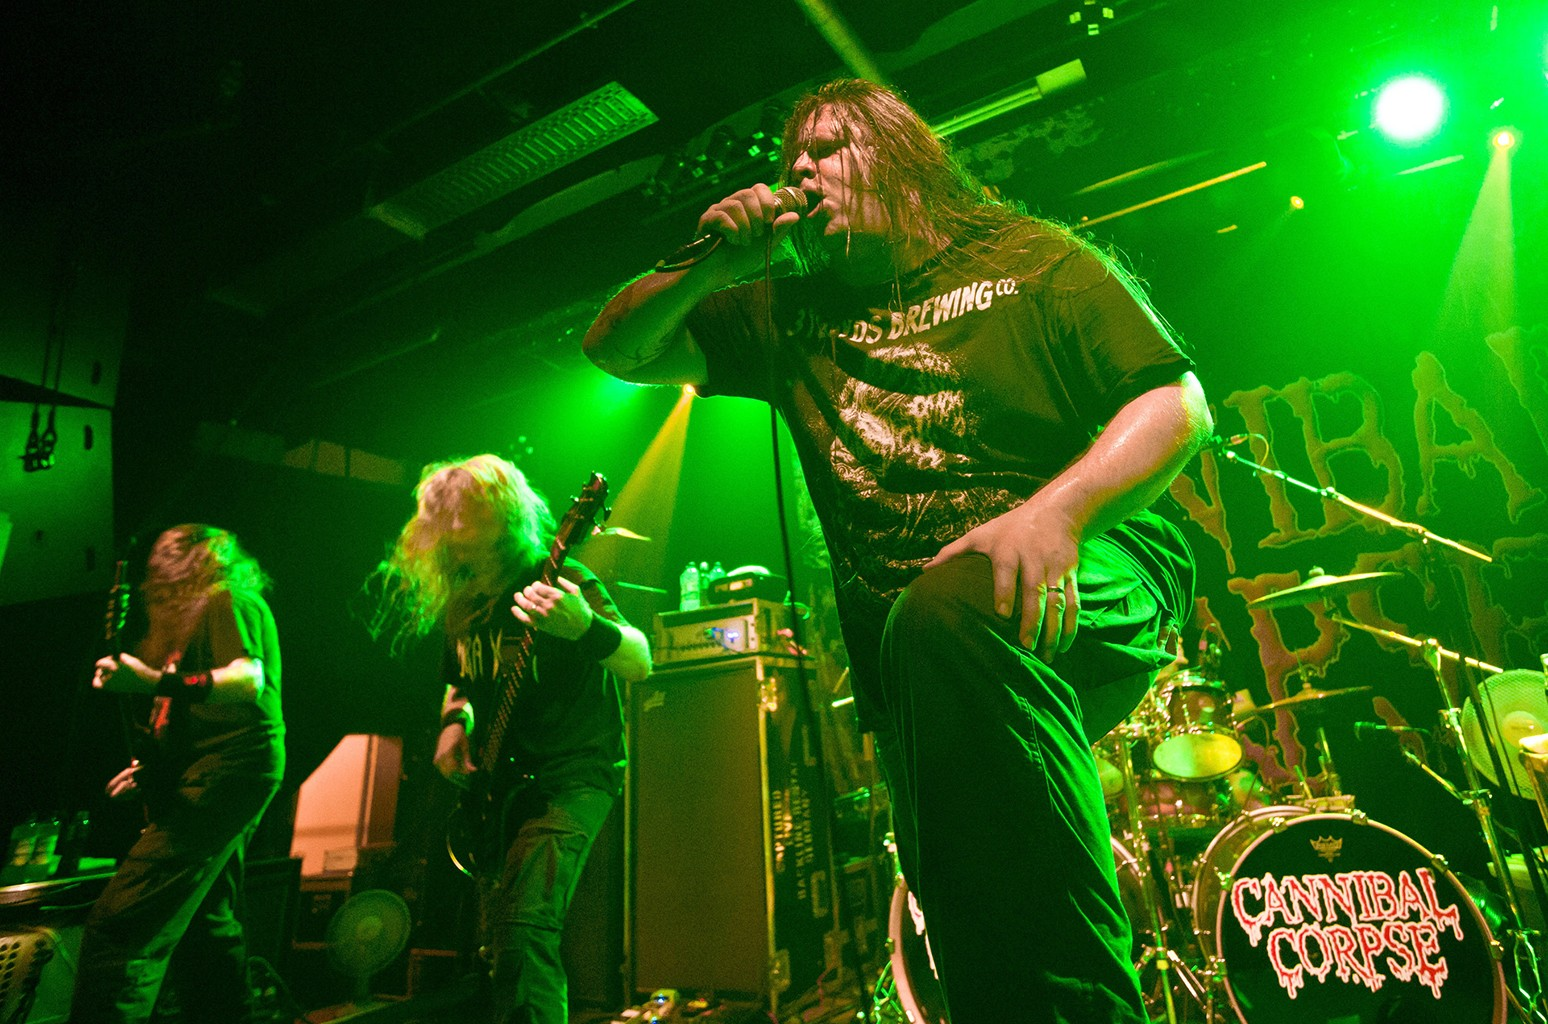 Cannibal Corpse perform at the Postbahnhof